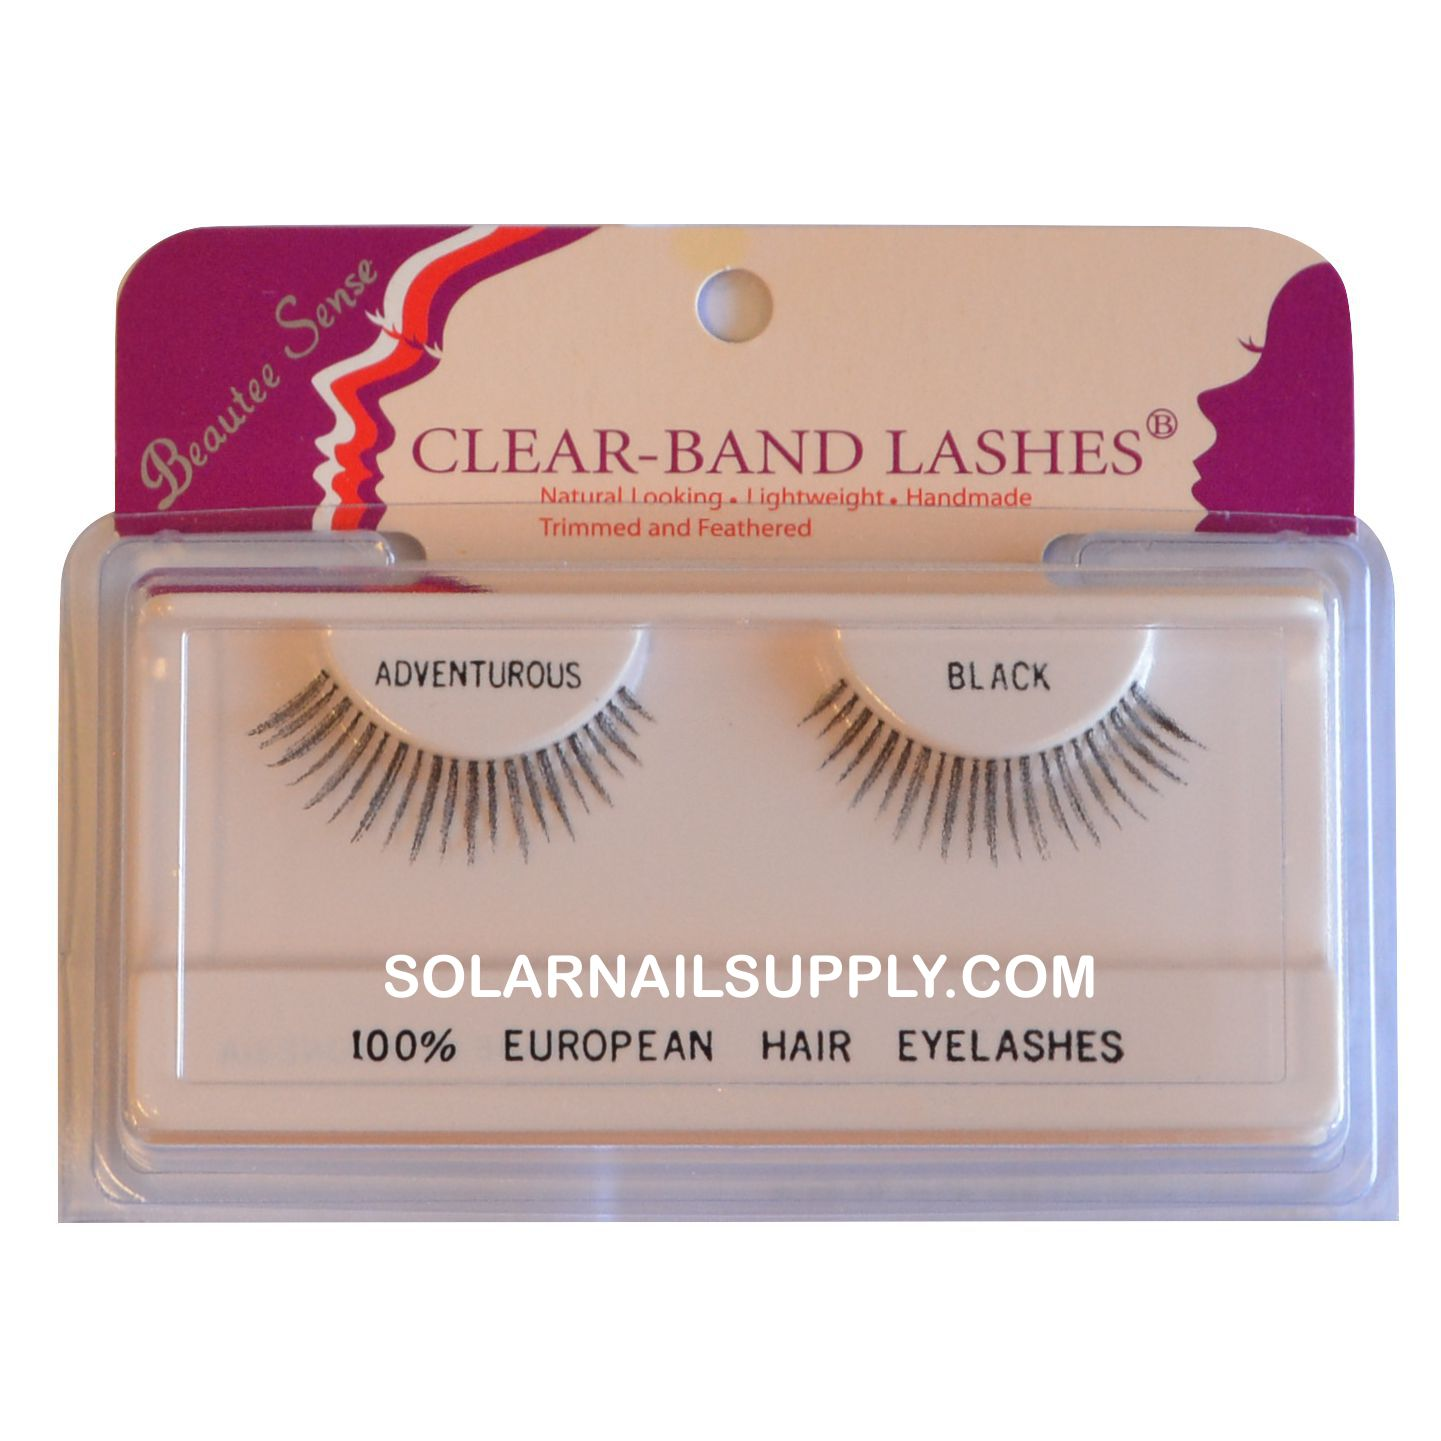 Beautee Sense Clear-Band Lashes (adventurous) - Black - 1 pack